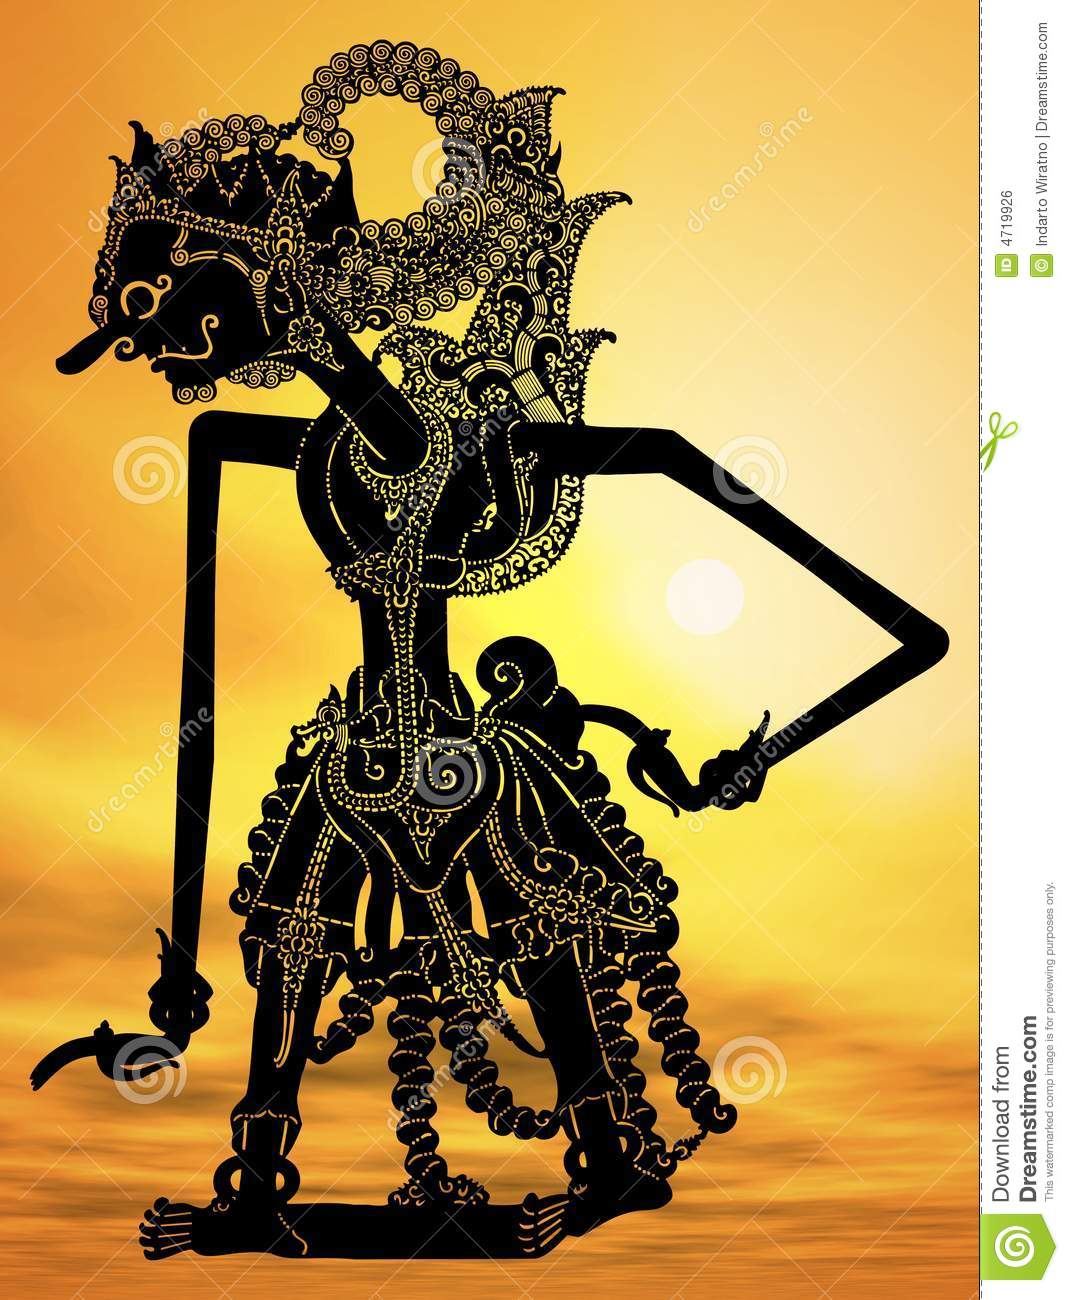 javanese puppet stock illustration illustration of brown 4719926 dreamstime com